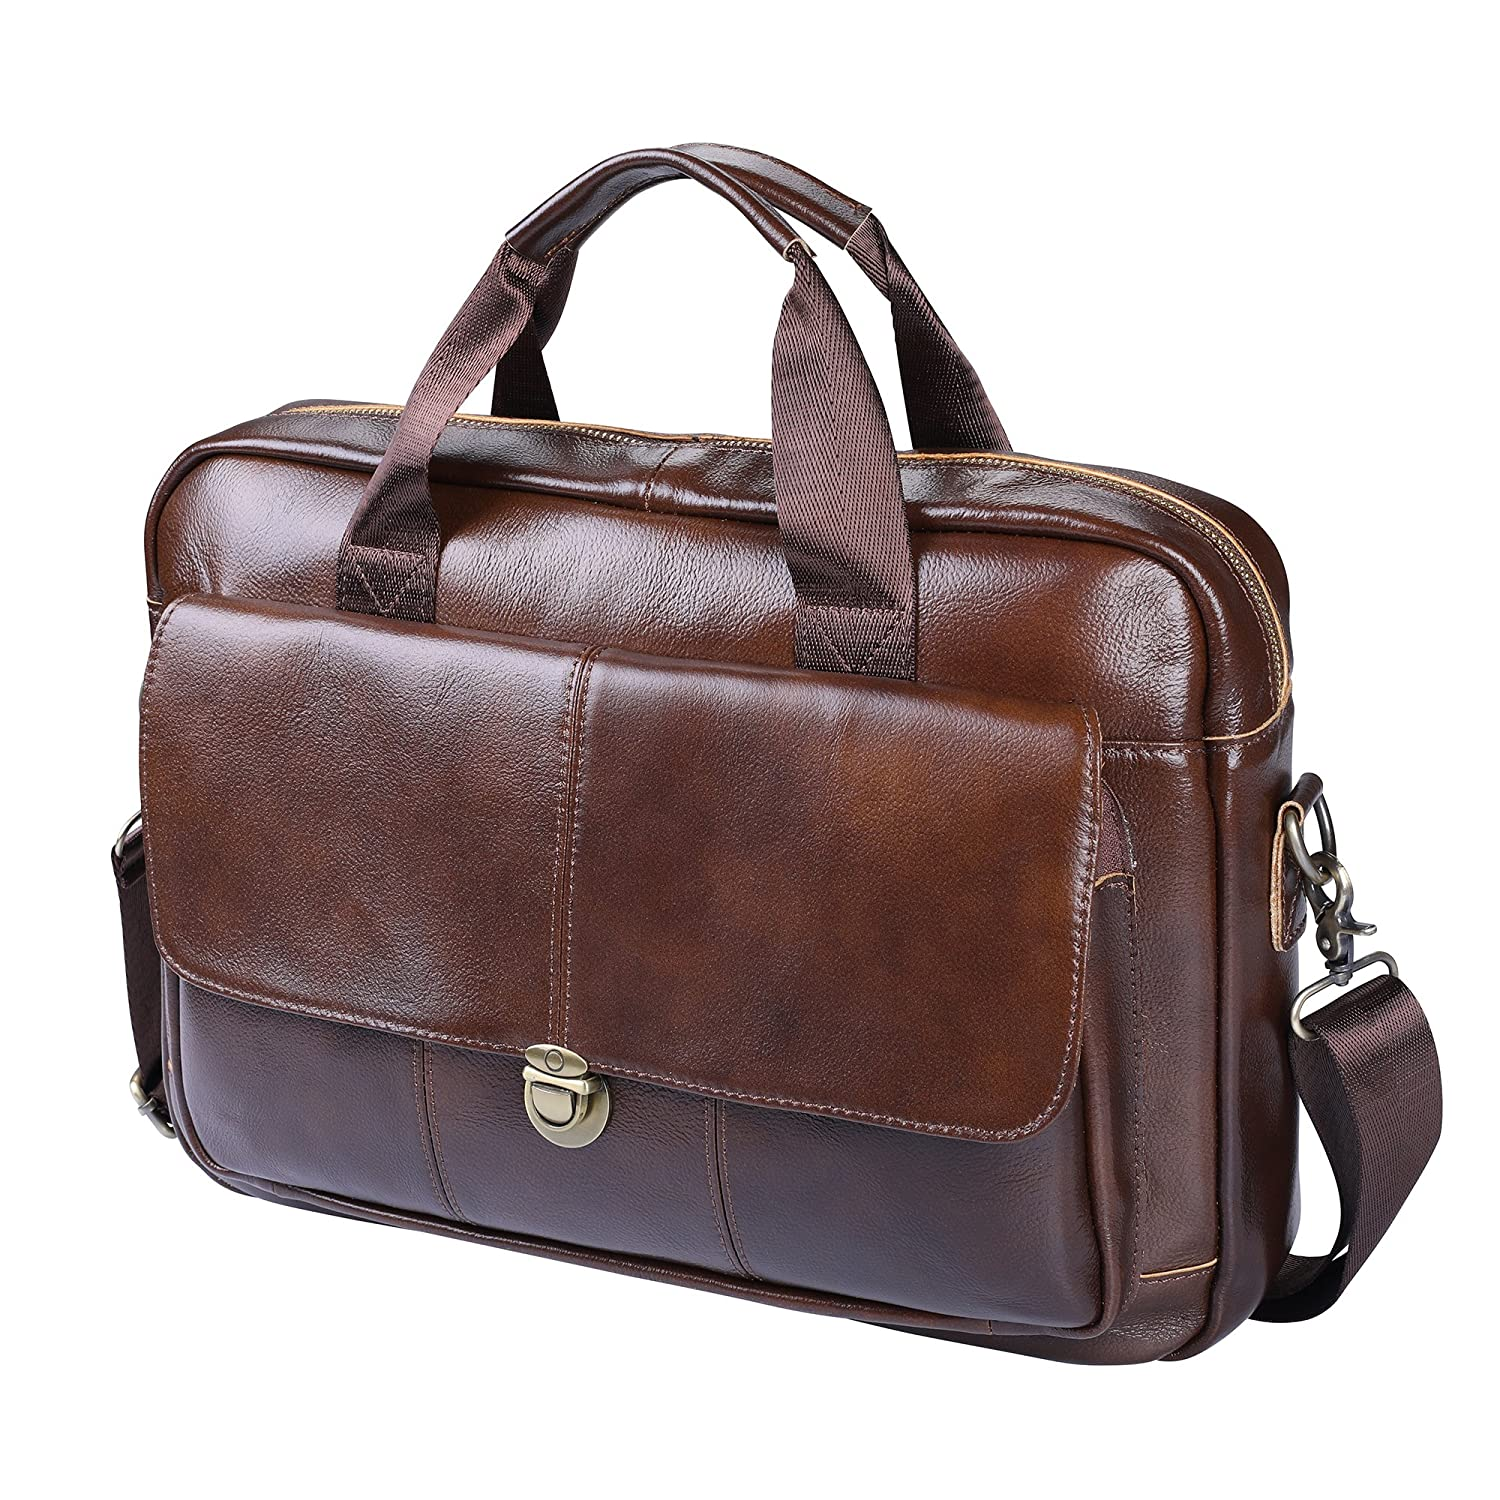 Men's Briefcase TECOOL Genuine Leather Laptop Business Shoulder Bag office bag Messenger Bag Satchel Bag,Brown